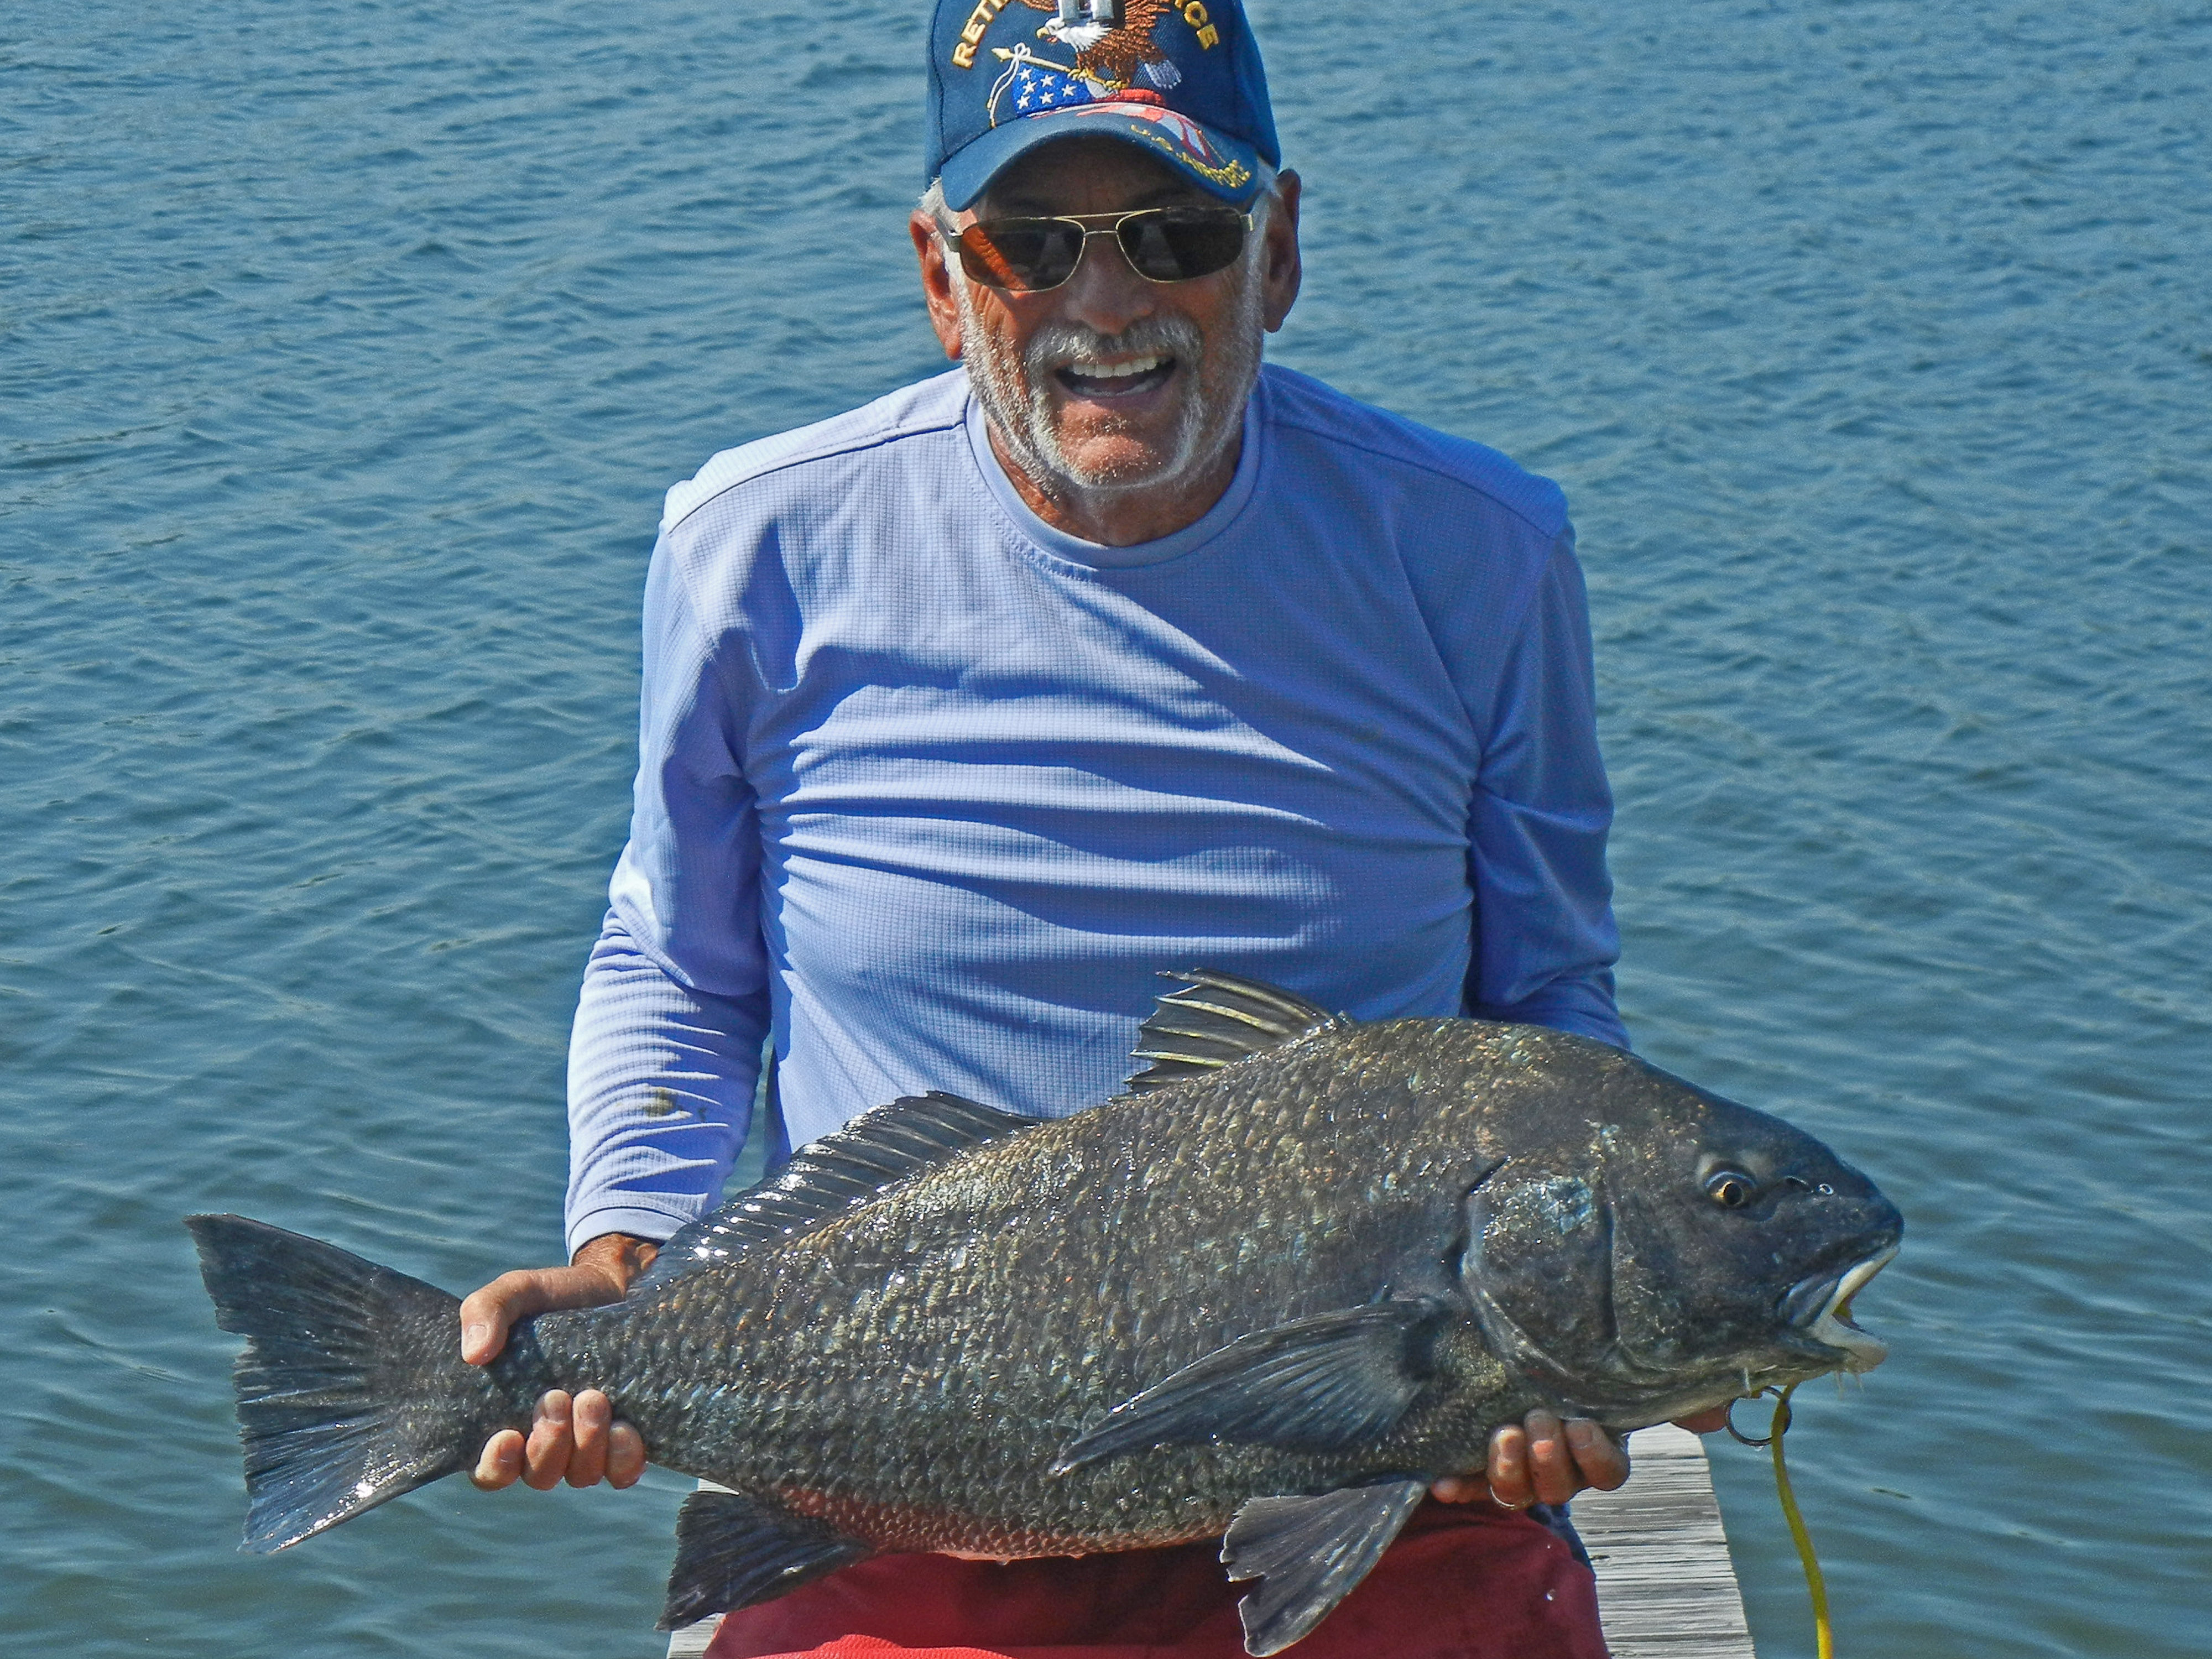 Steve sigler with 19 lb black drum caught in 1000 island for Murphy s hook house fishing report